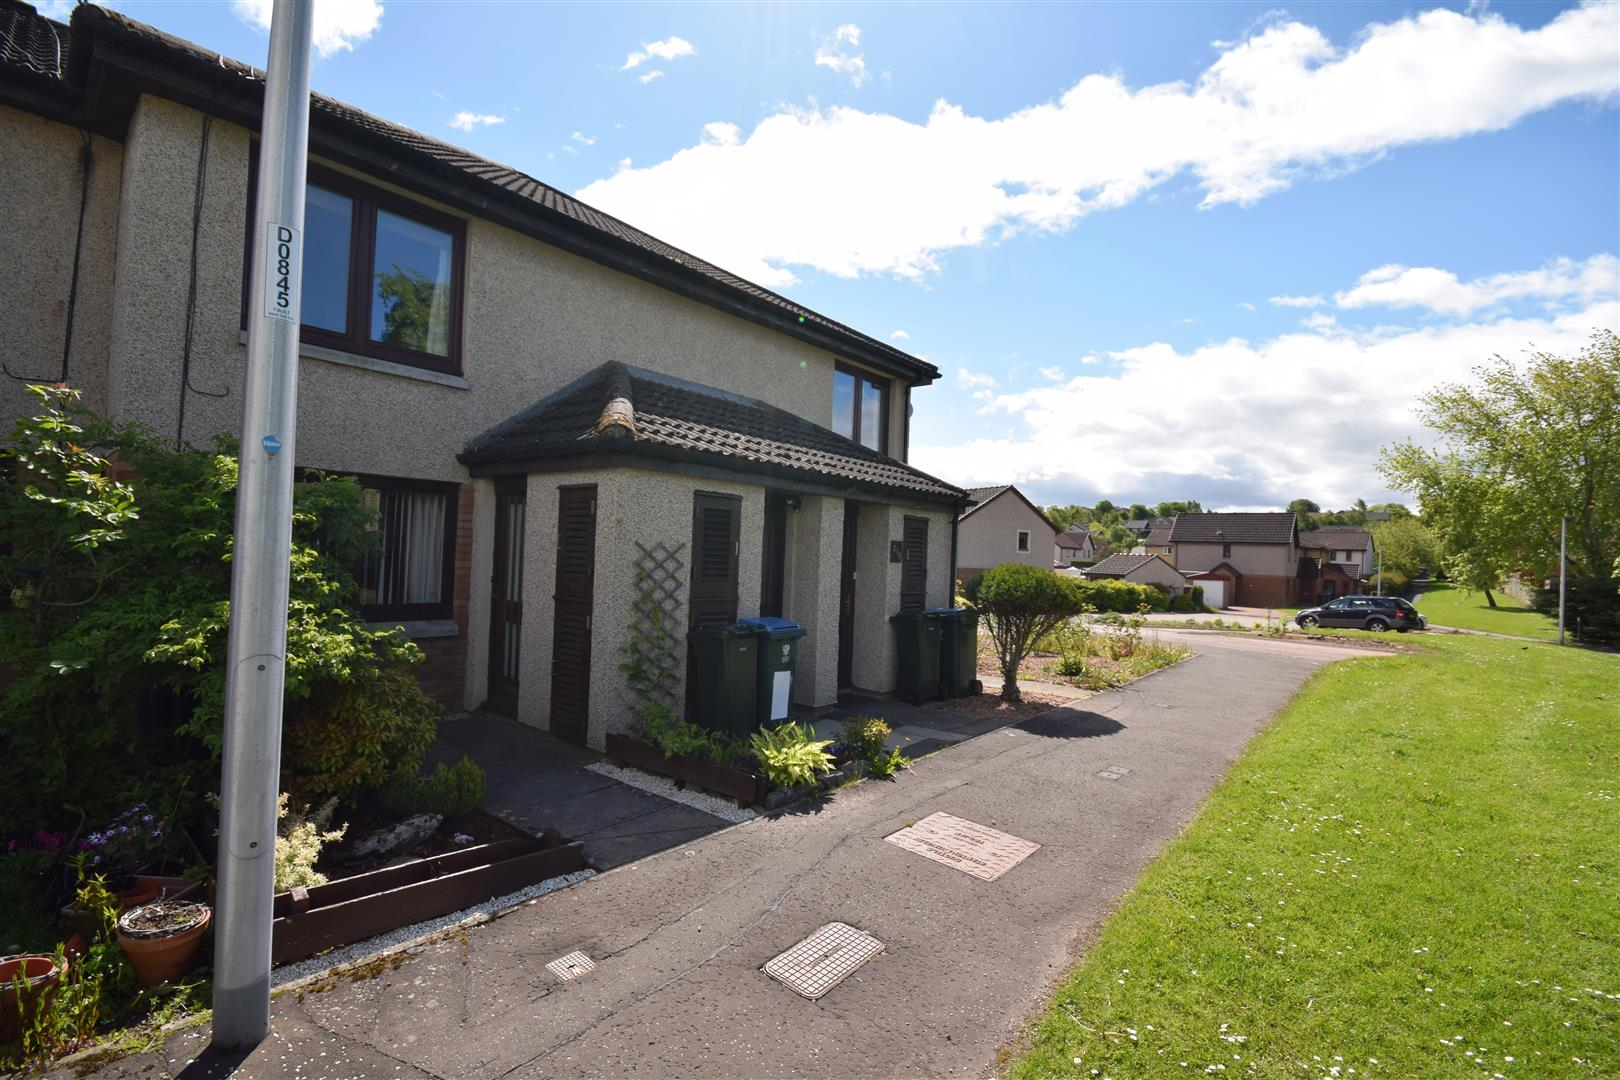 22A, Hermitage Drive, Perth, Perthshire, PH1 2SY, UK